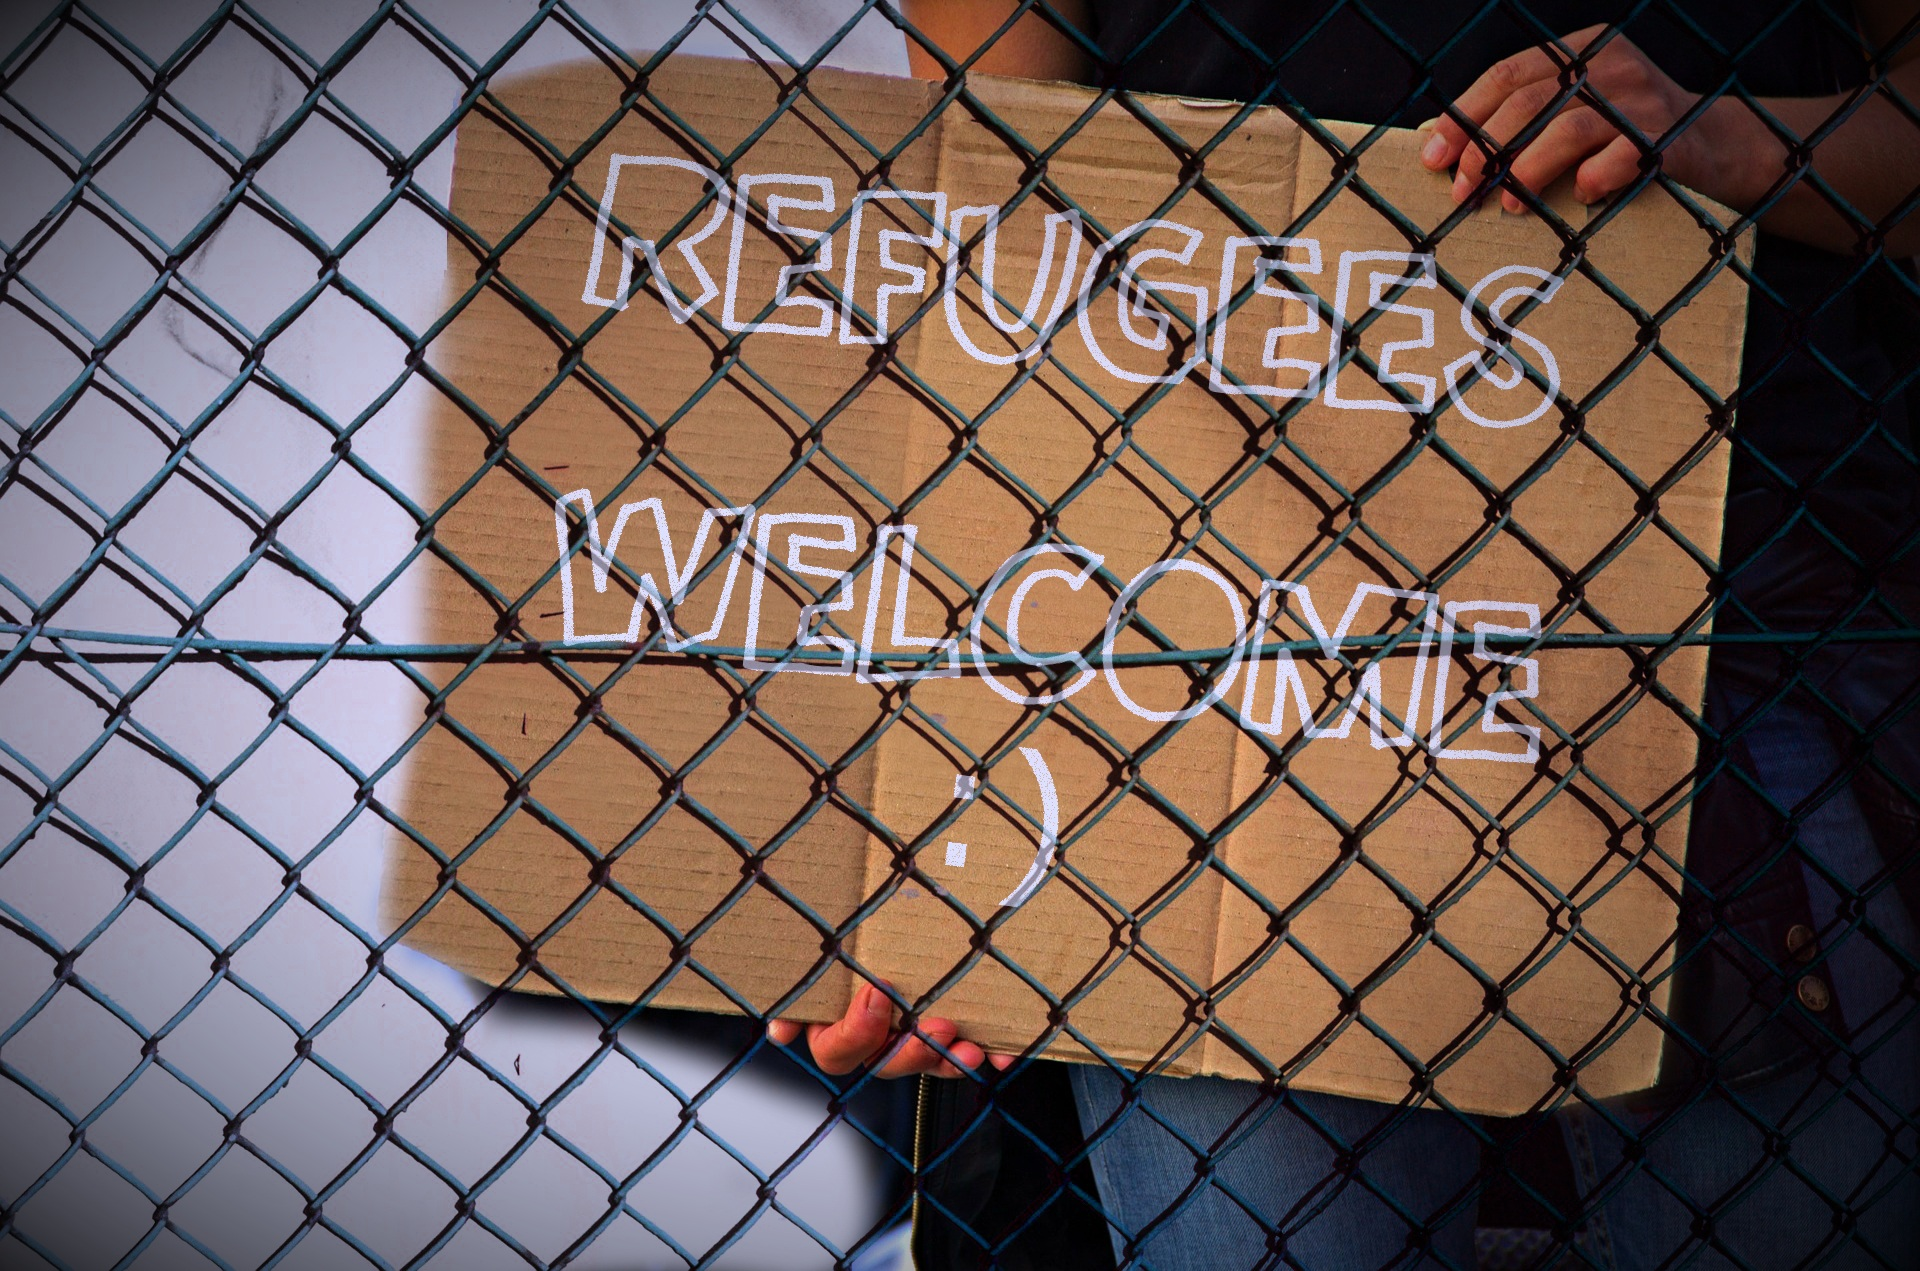 Refugees for web